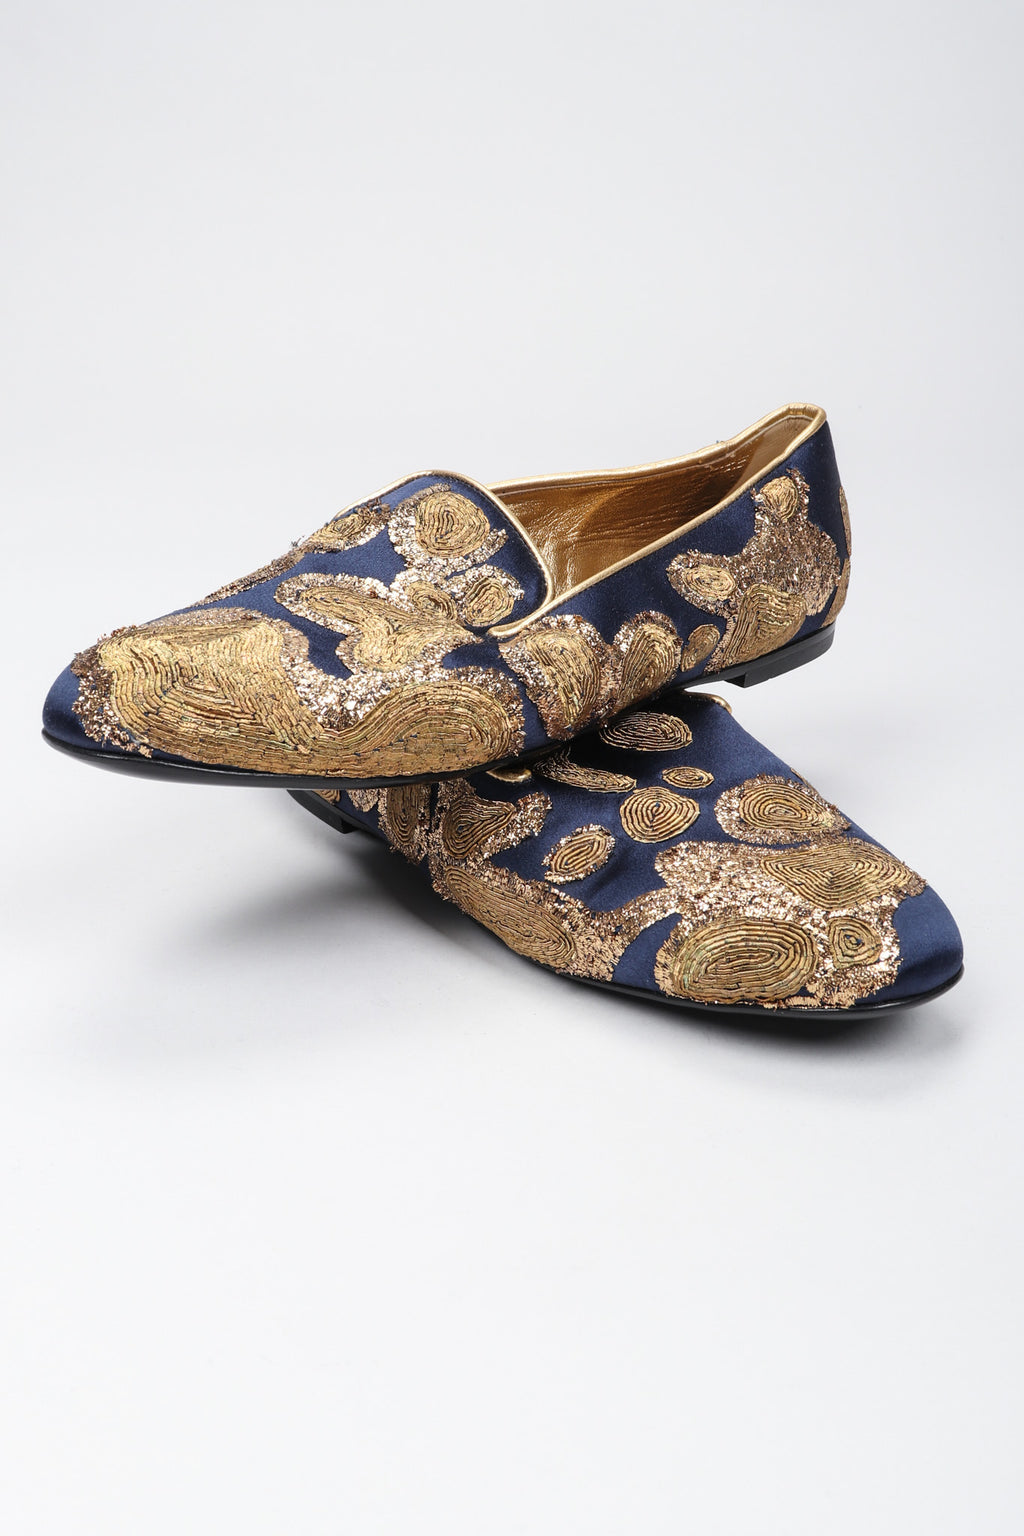 Recess Los Angeles Vintage Roger Vivier Metal Couching Embroidered Organic Freeform Loafers Smoking Slippers